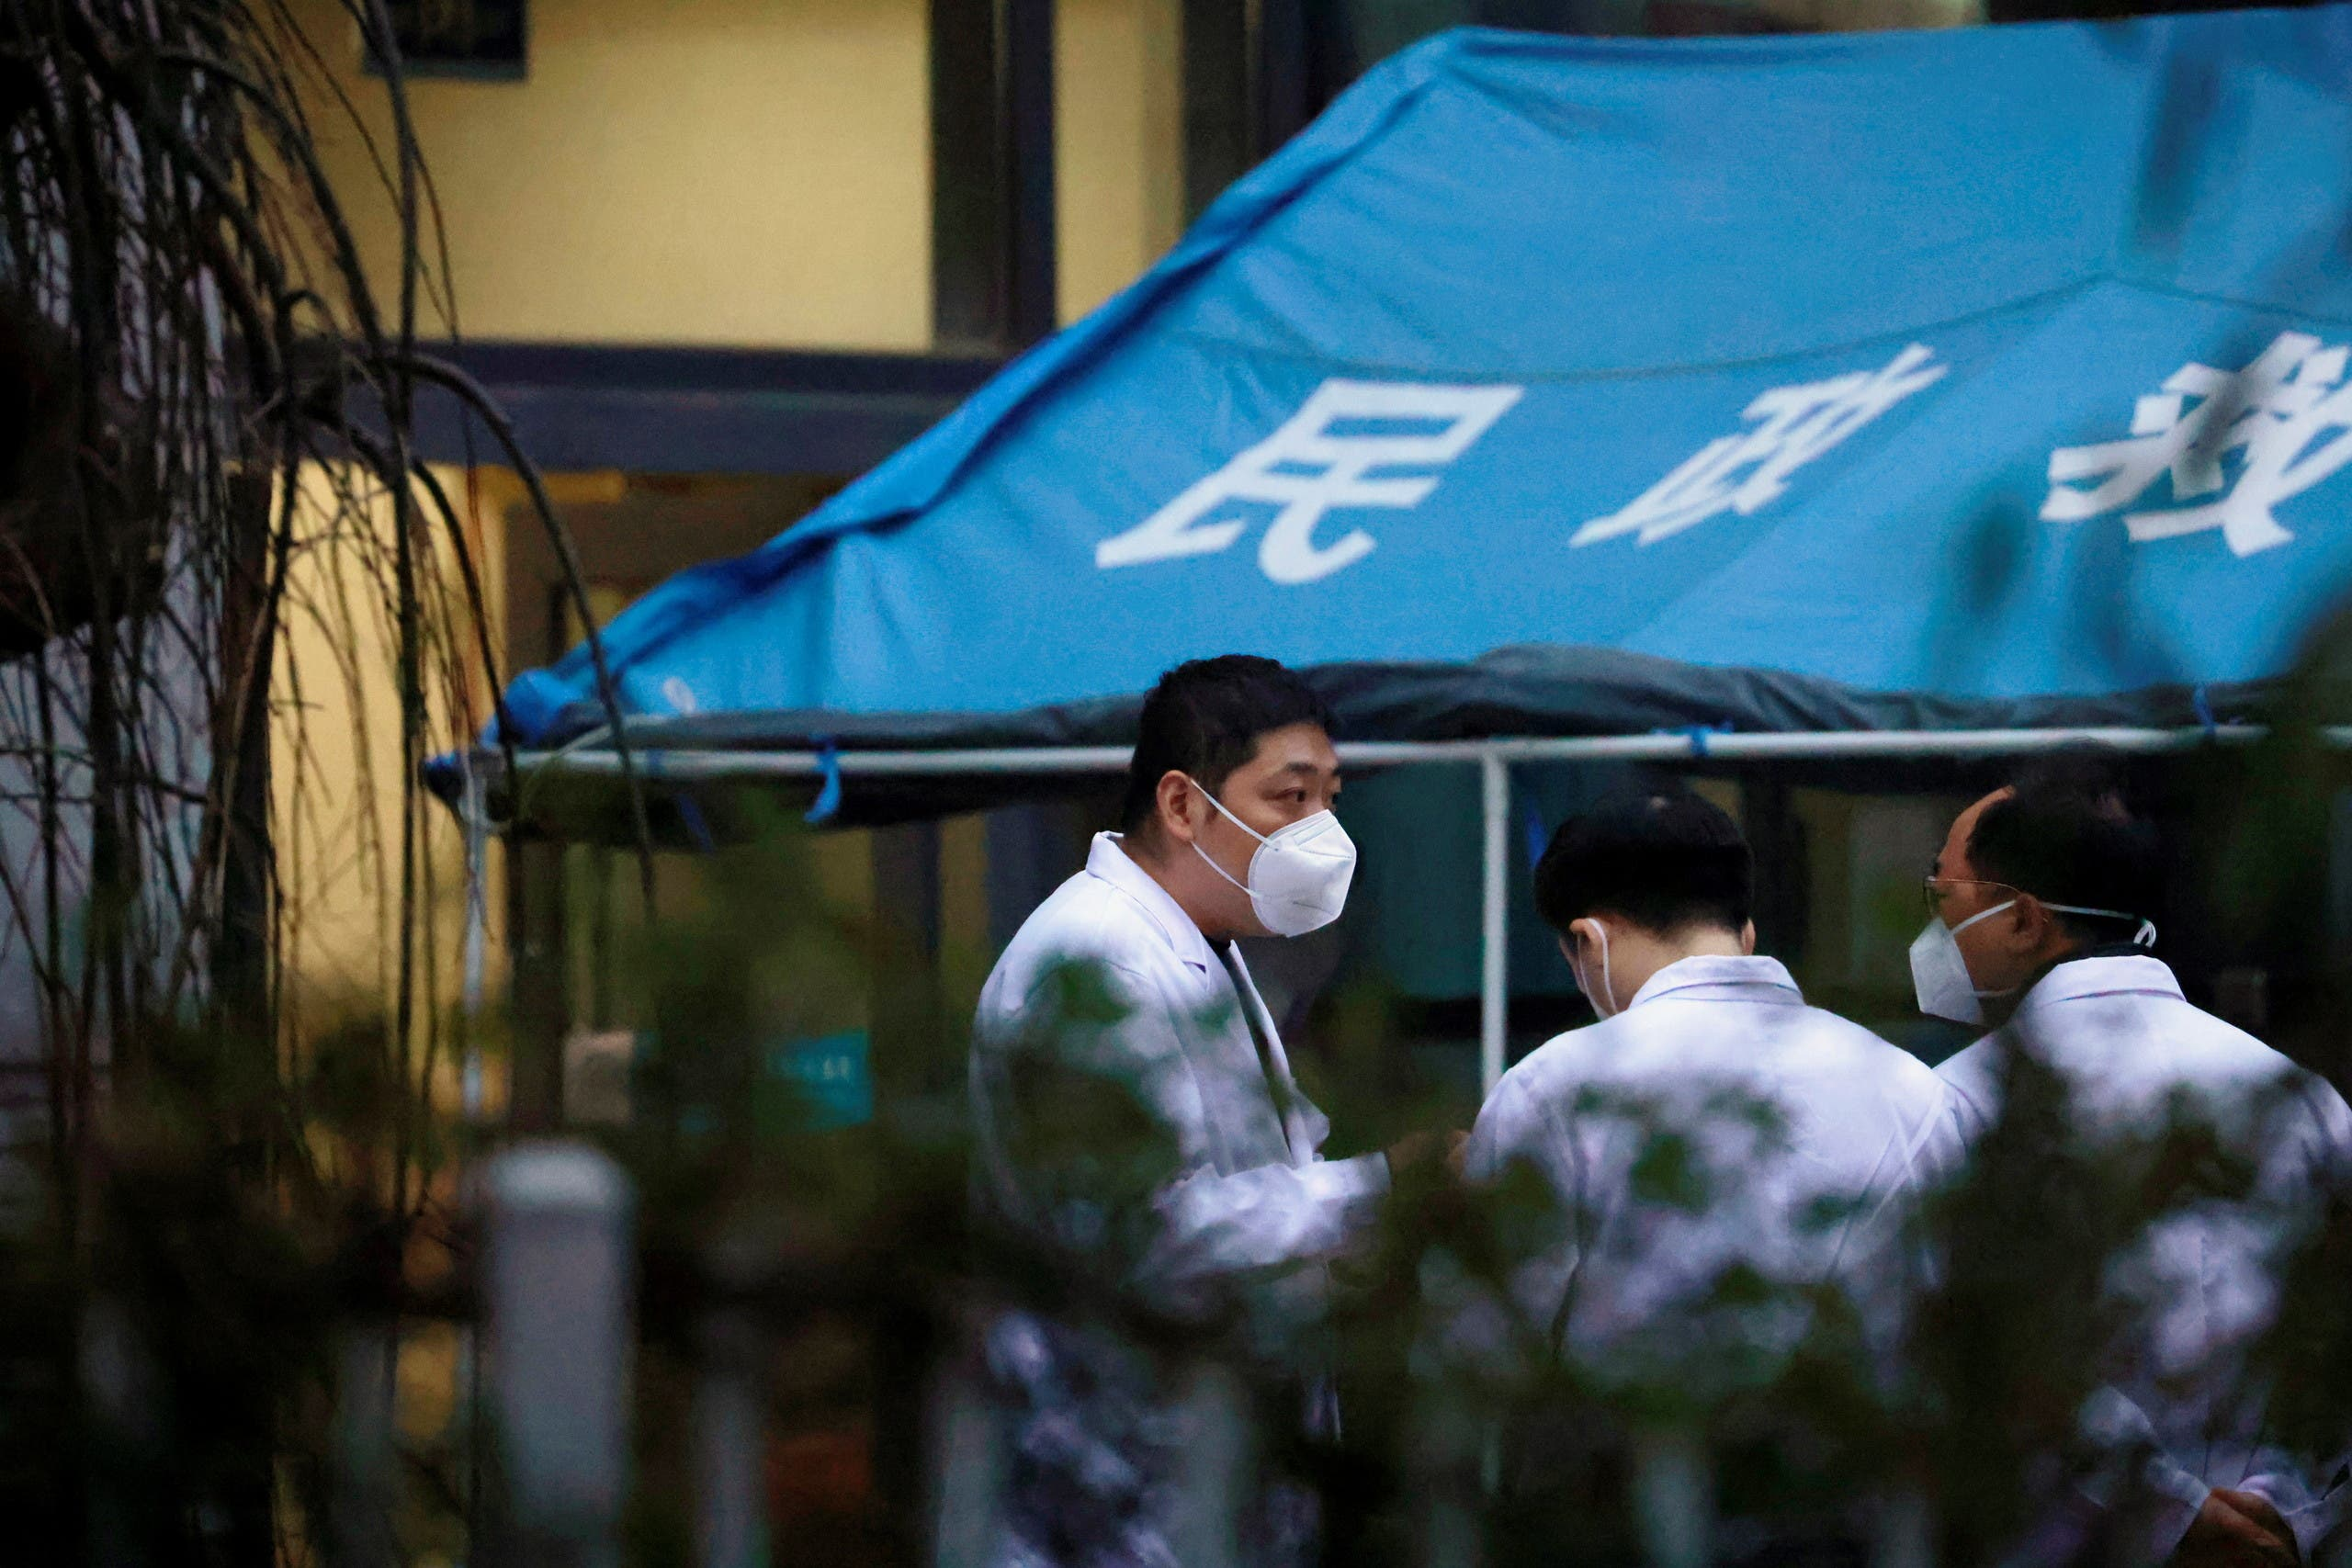 A member of the Wuhan Health Organization team